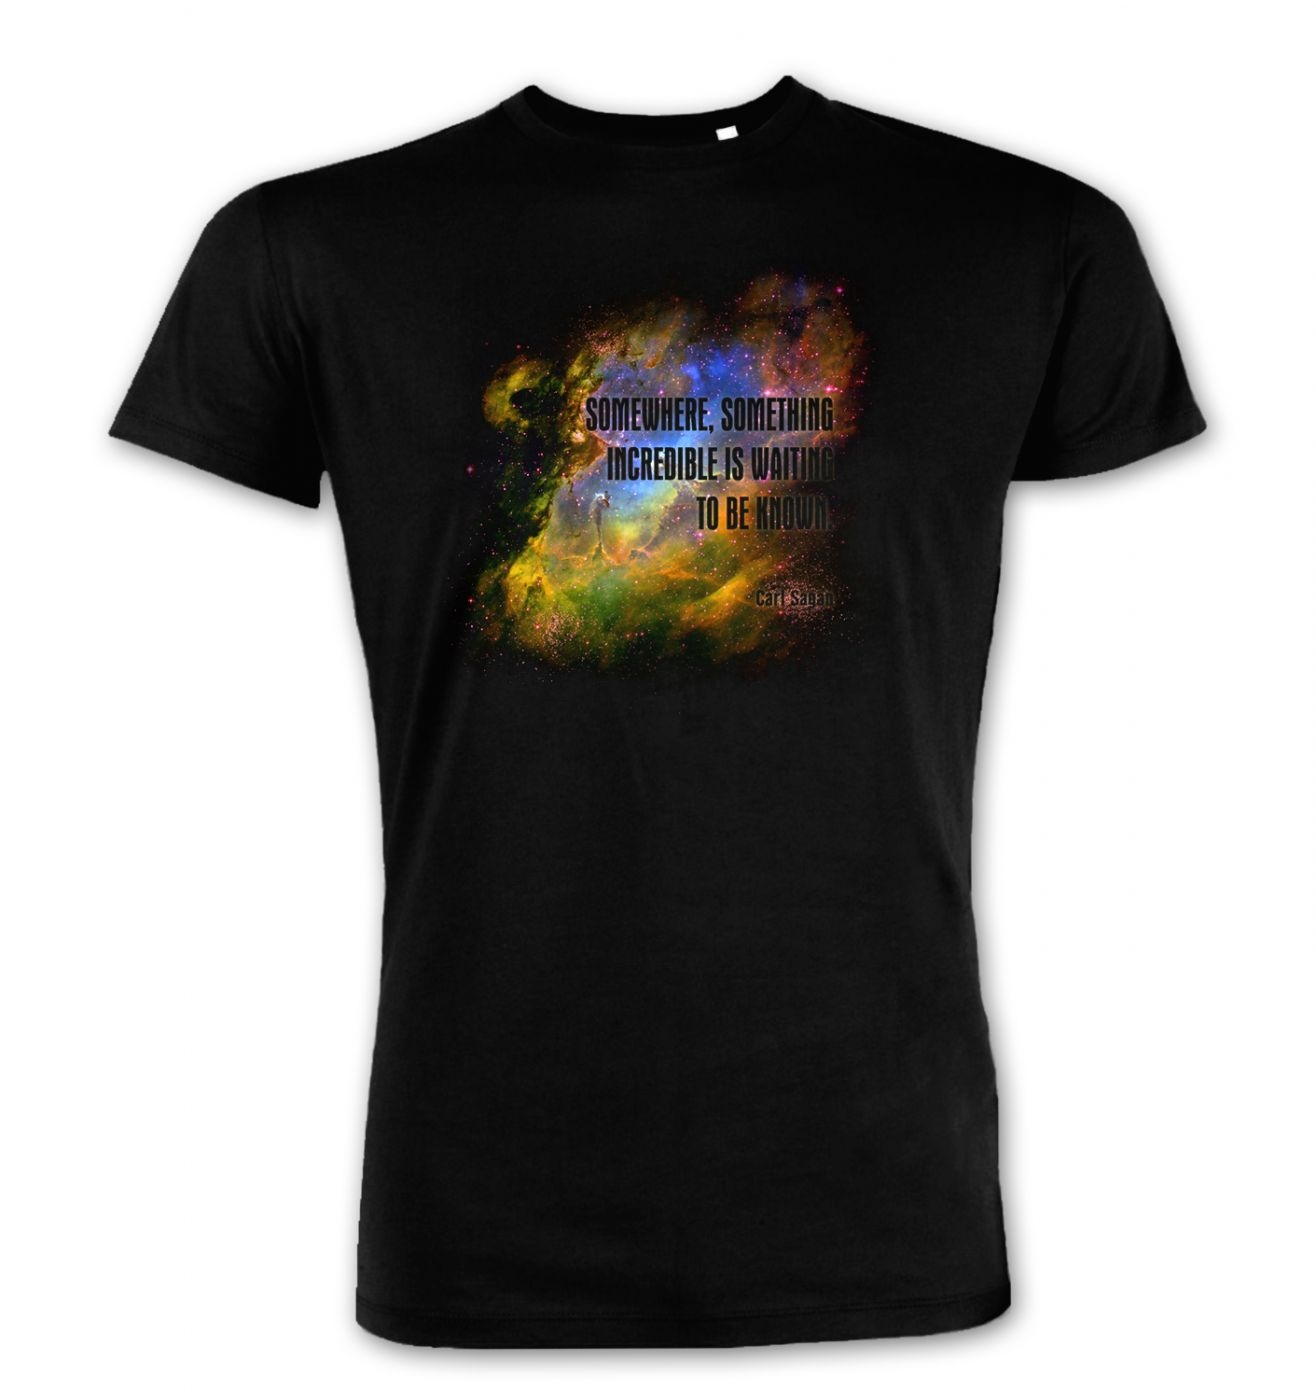 Eagle Nebula Carl Sagan Quote Something Incredible premium t-shirt